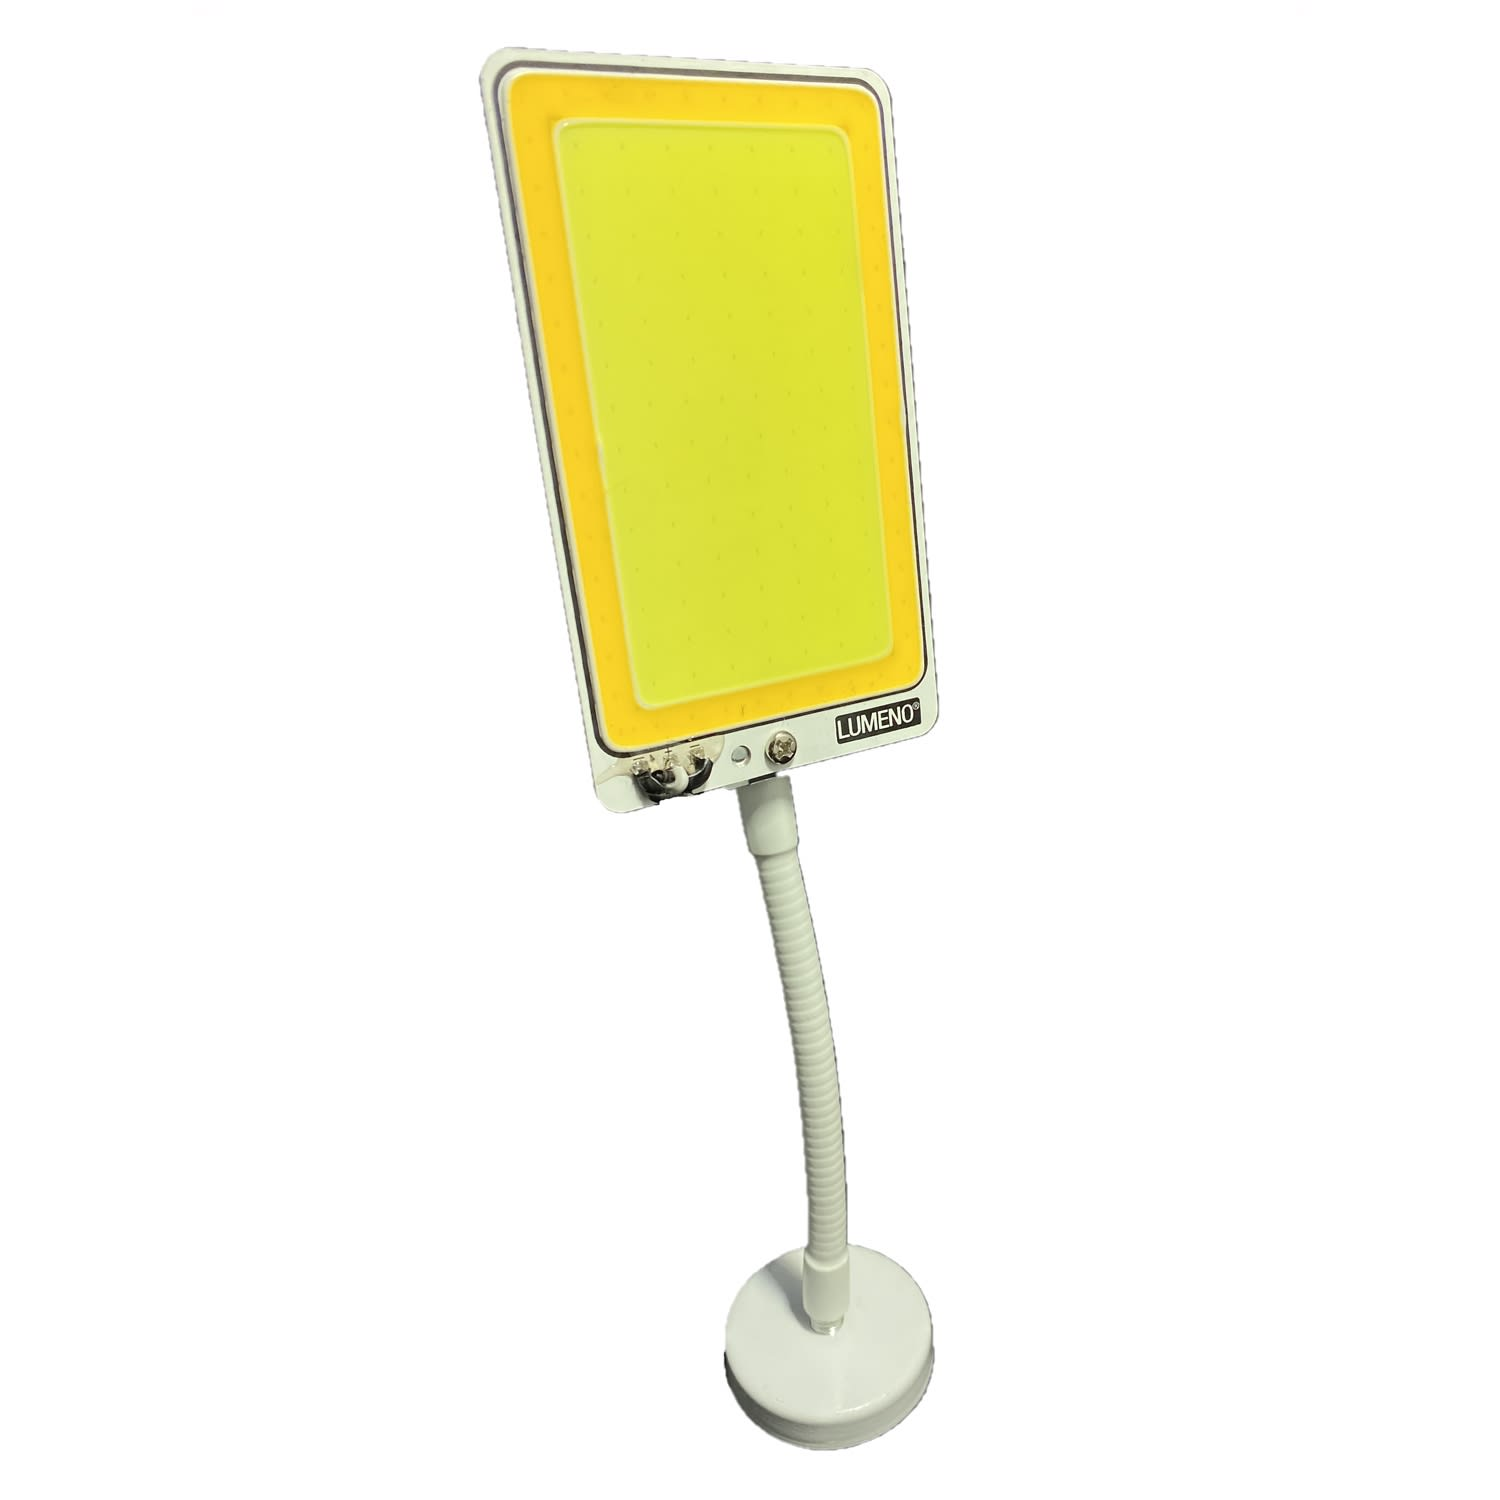 Lumeno Magnetic COB Camping Light